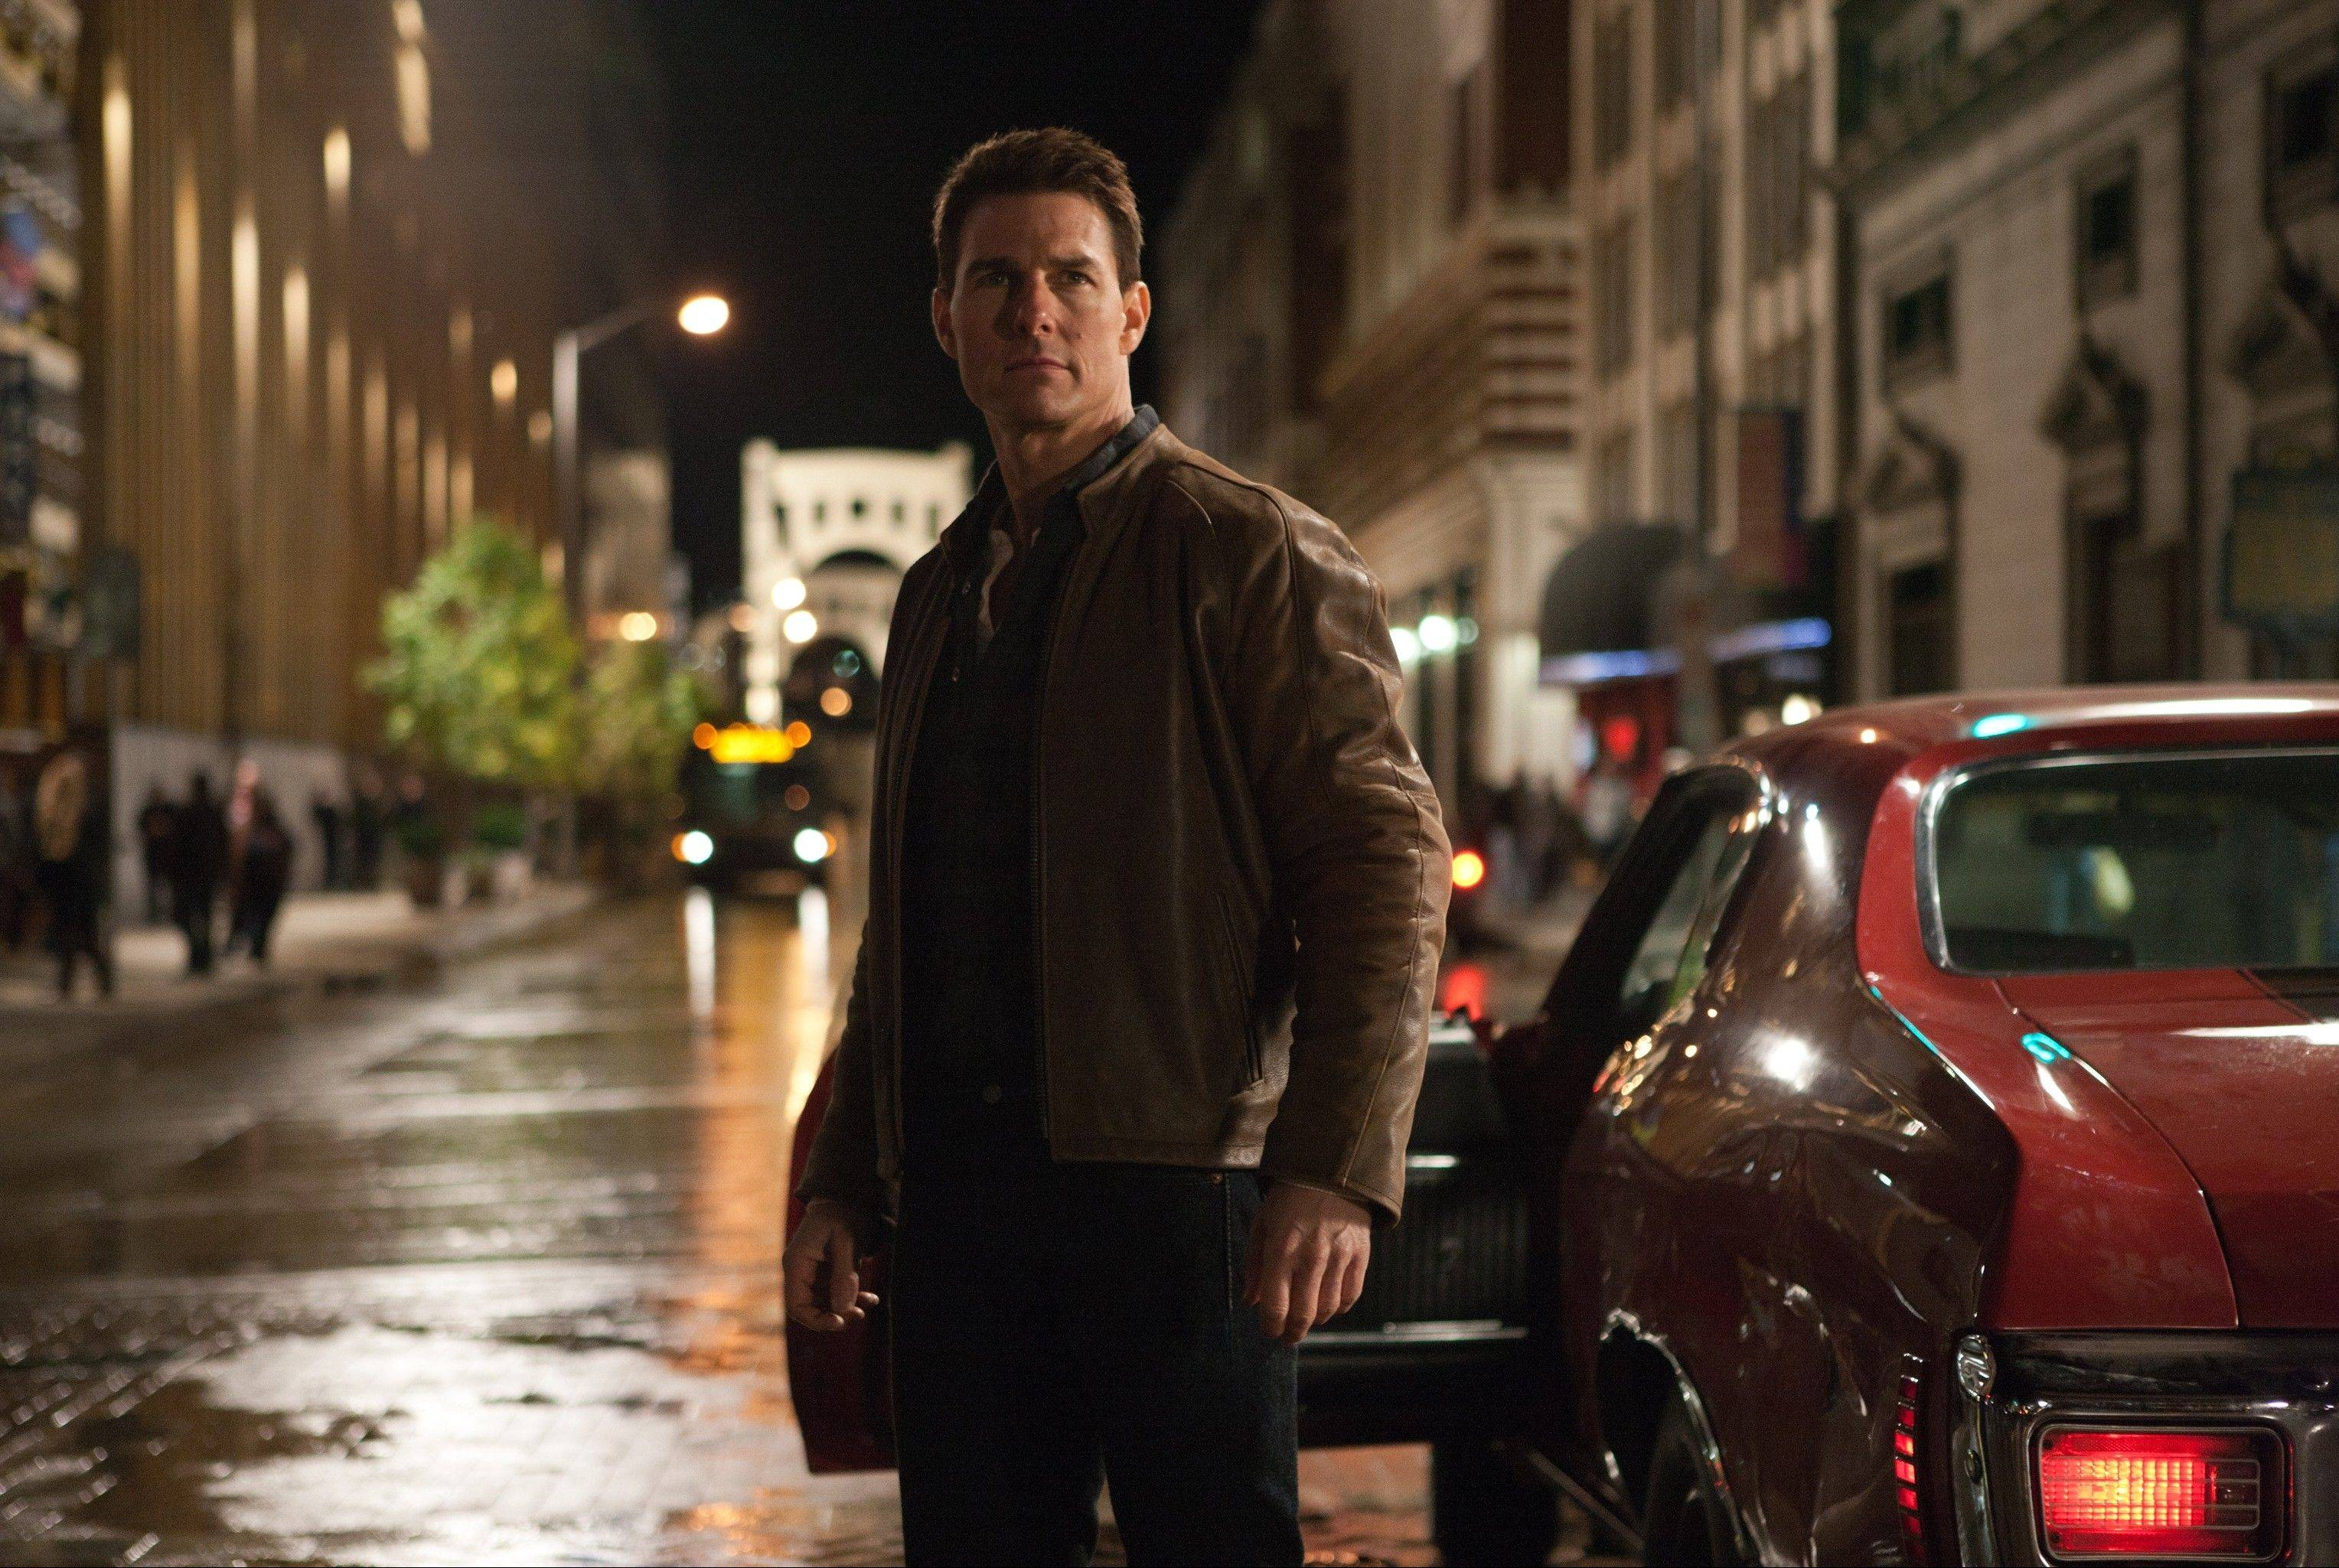 Tom Cruise plays a vigilante in �Jack Reacher�